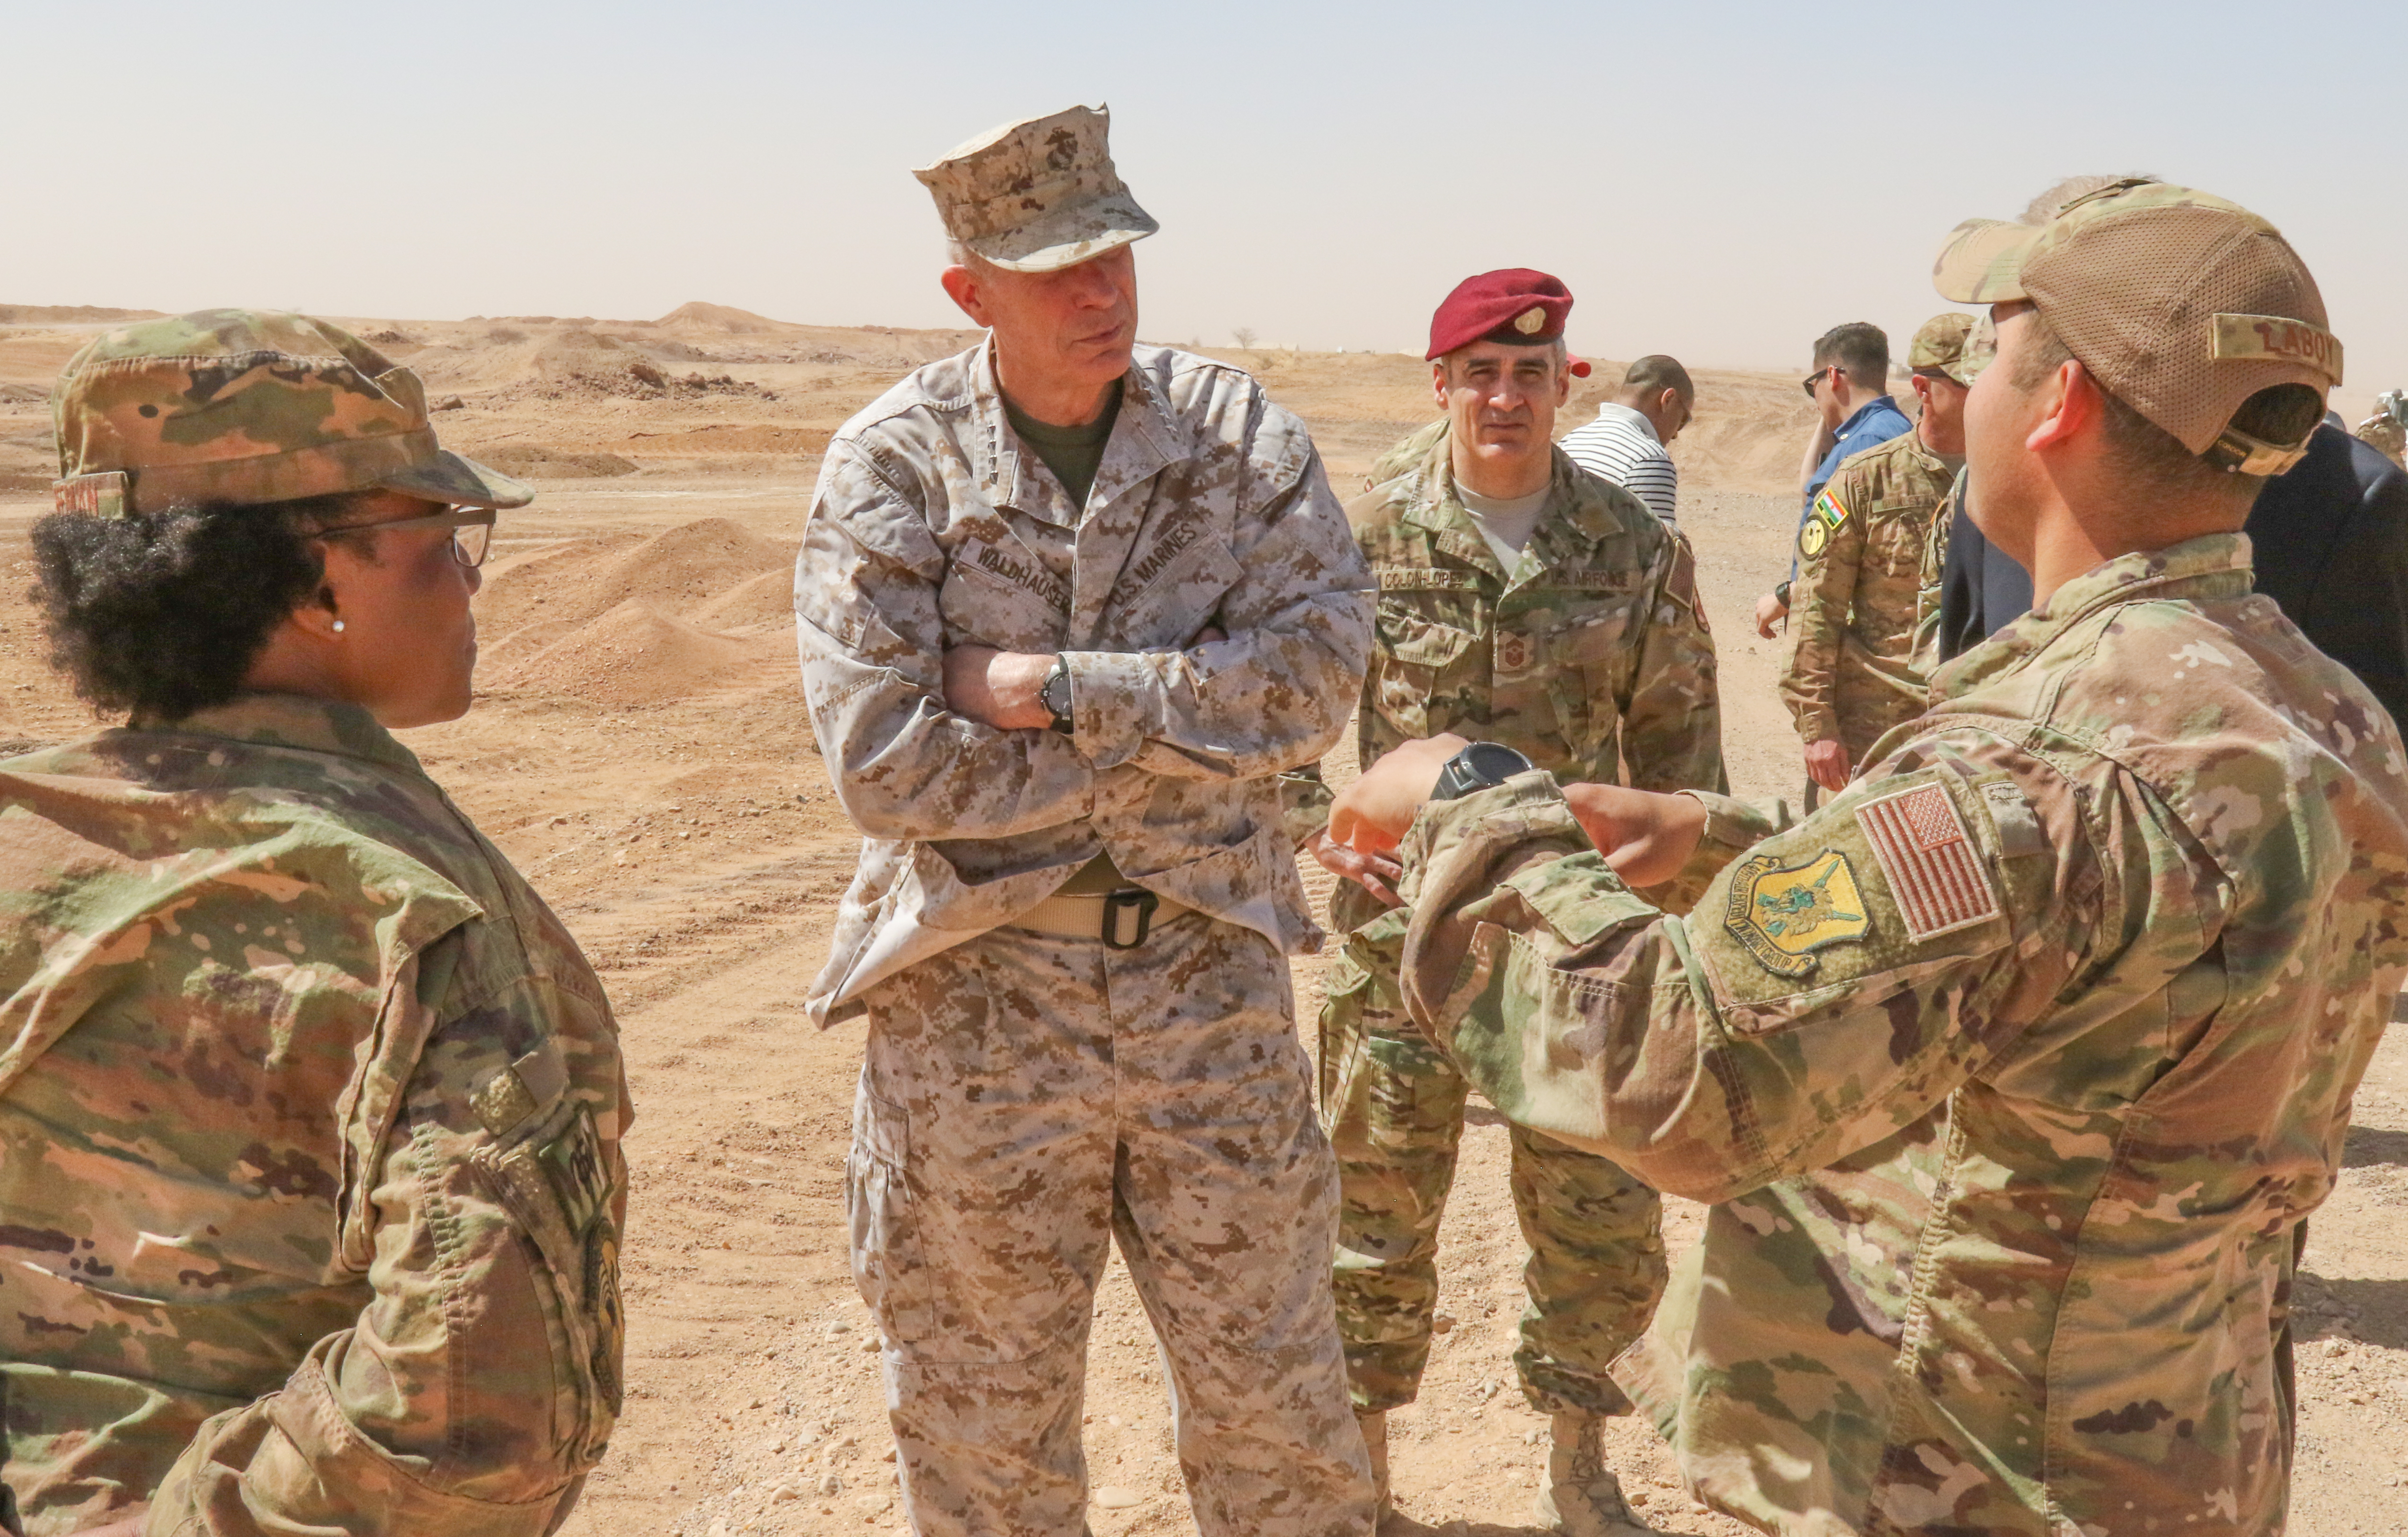 U.S. Marine Corps Gen. Thomas D. Waldhauser, commander, U.S. Africa Command, receives an update on ongoing construction at Air Base 201 in Agadez, Niger Jan. 25, 2018.